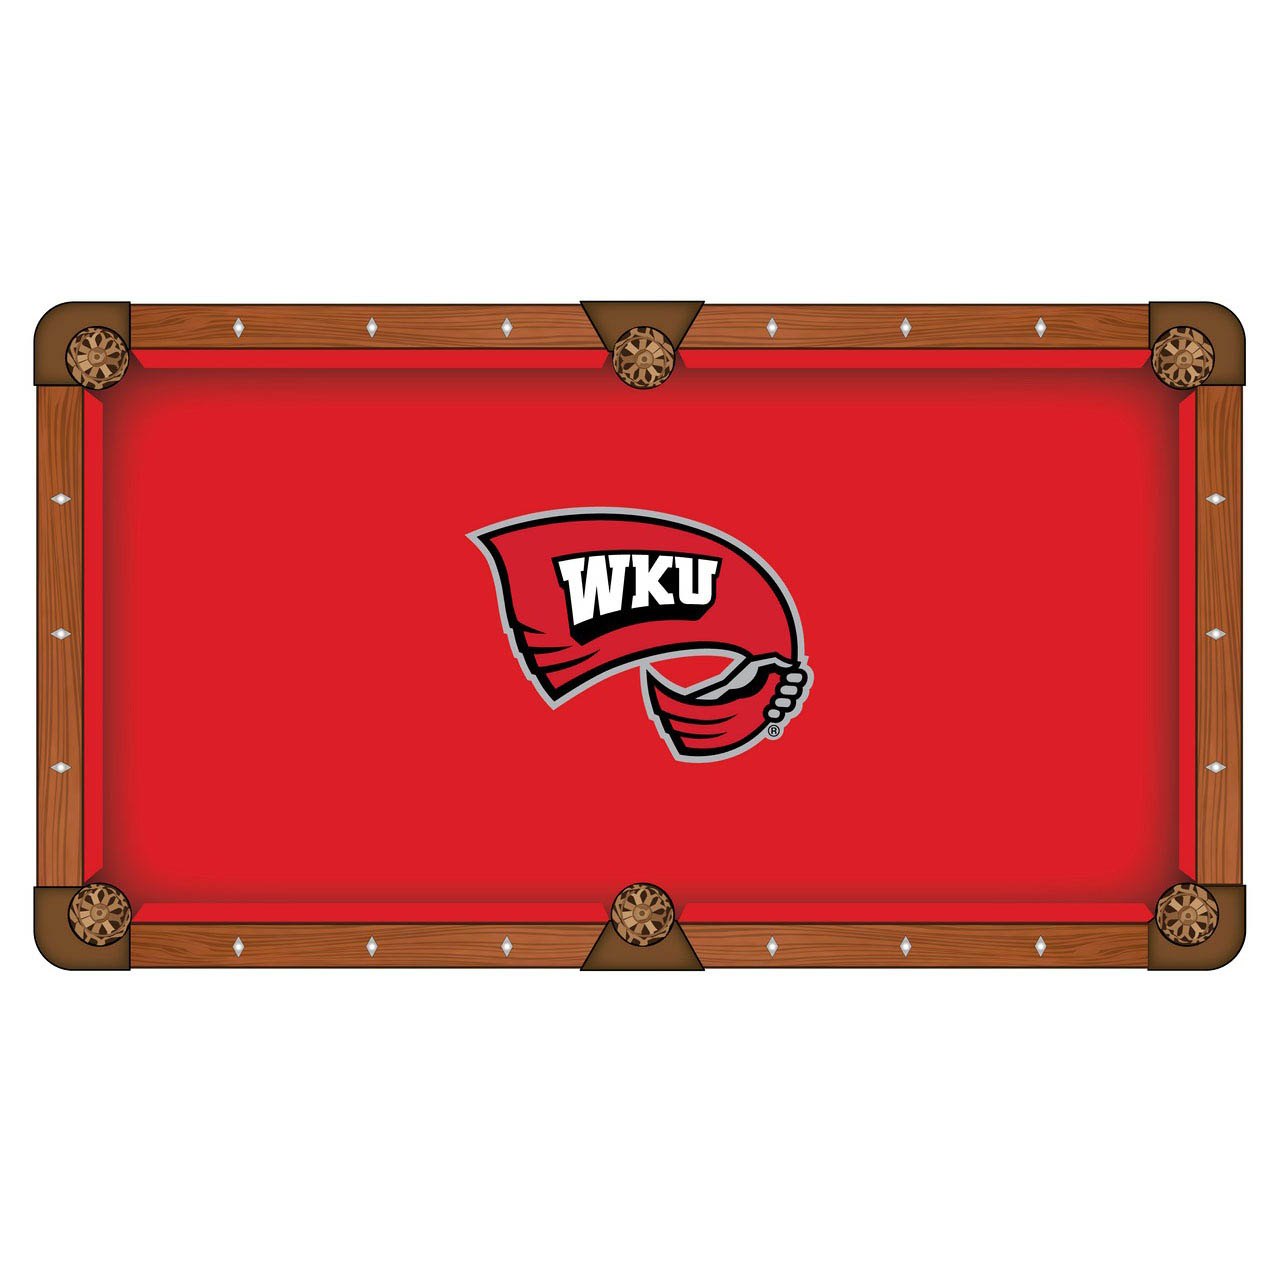 Select Western-Kentucky-University-Pool-Table-Cloth Product Picture 1047